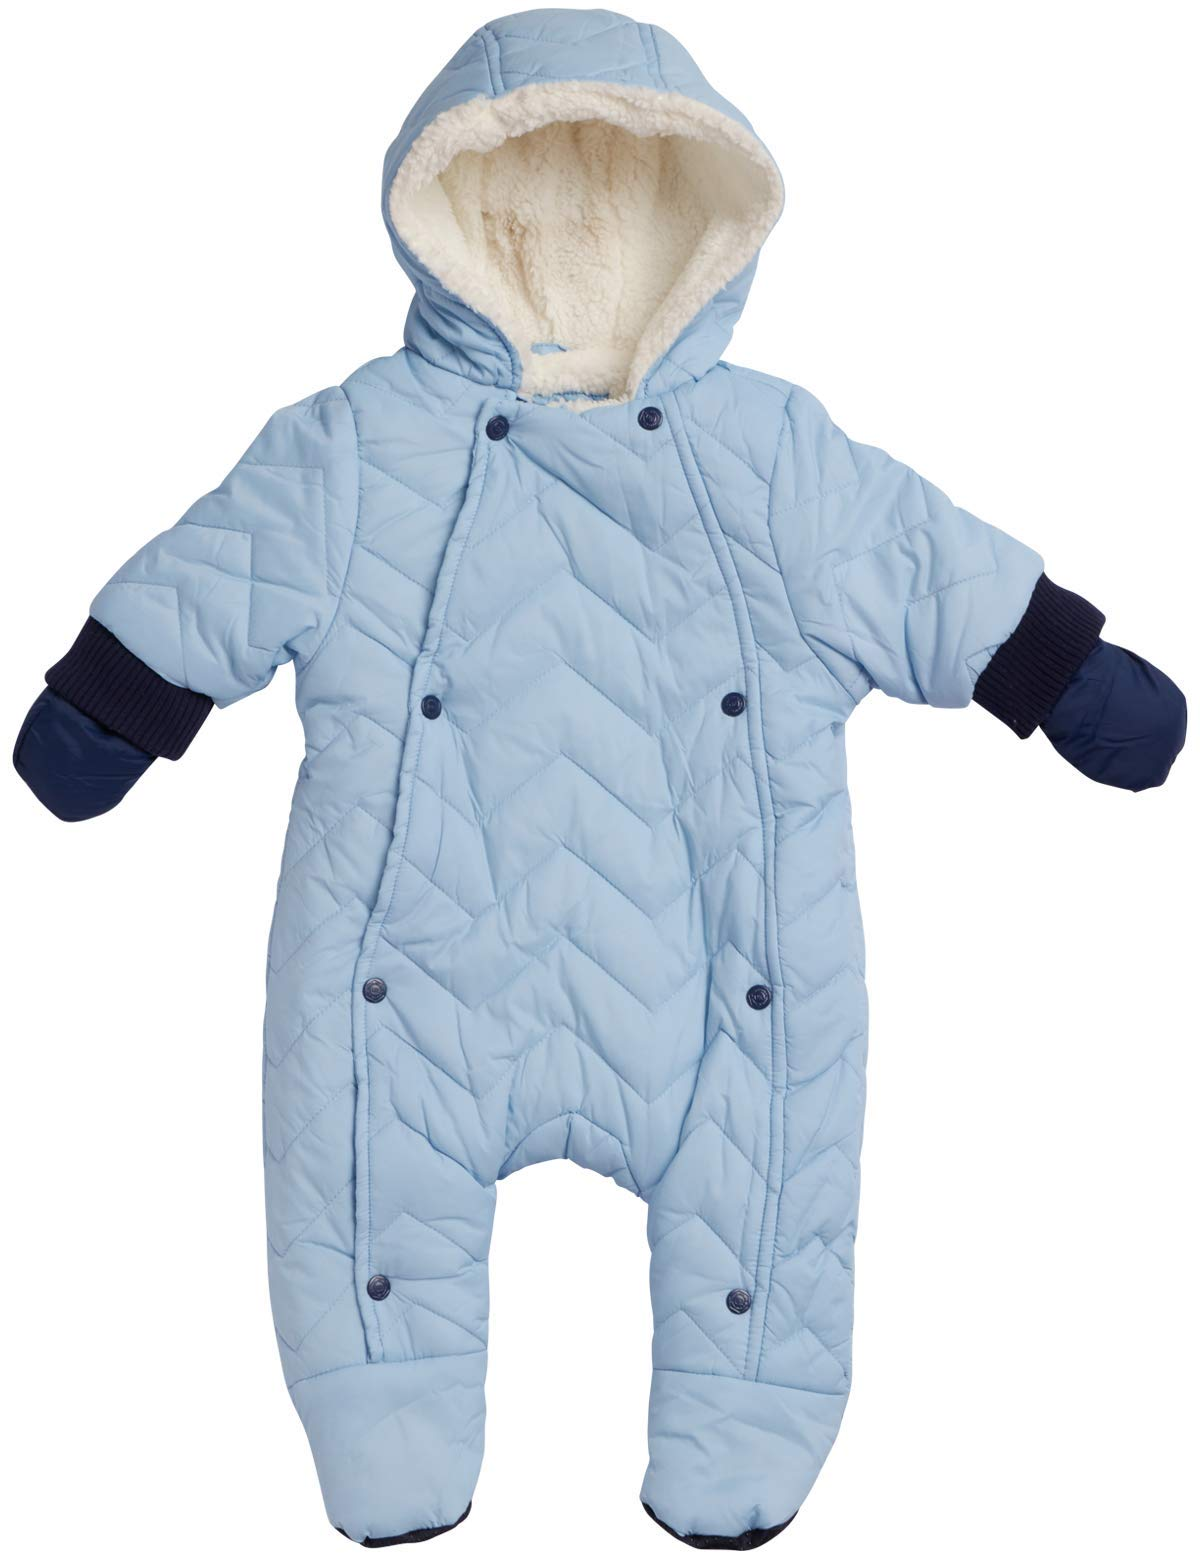 Urban Republic Newborn Boys Quilted Puffer Pram Winter Snowsuit - Fully Sherpa Fur Lined with Hood and Mittens, Baby Blue, Size 3 Months by Urban Republic